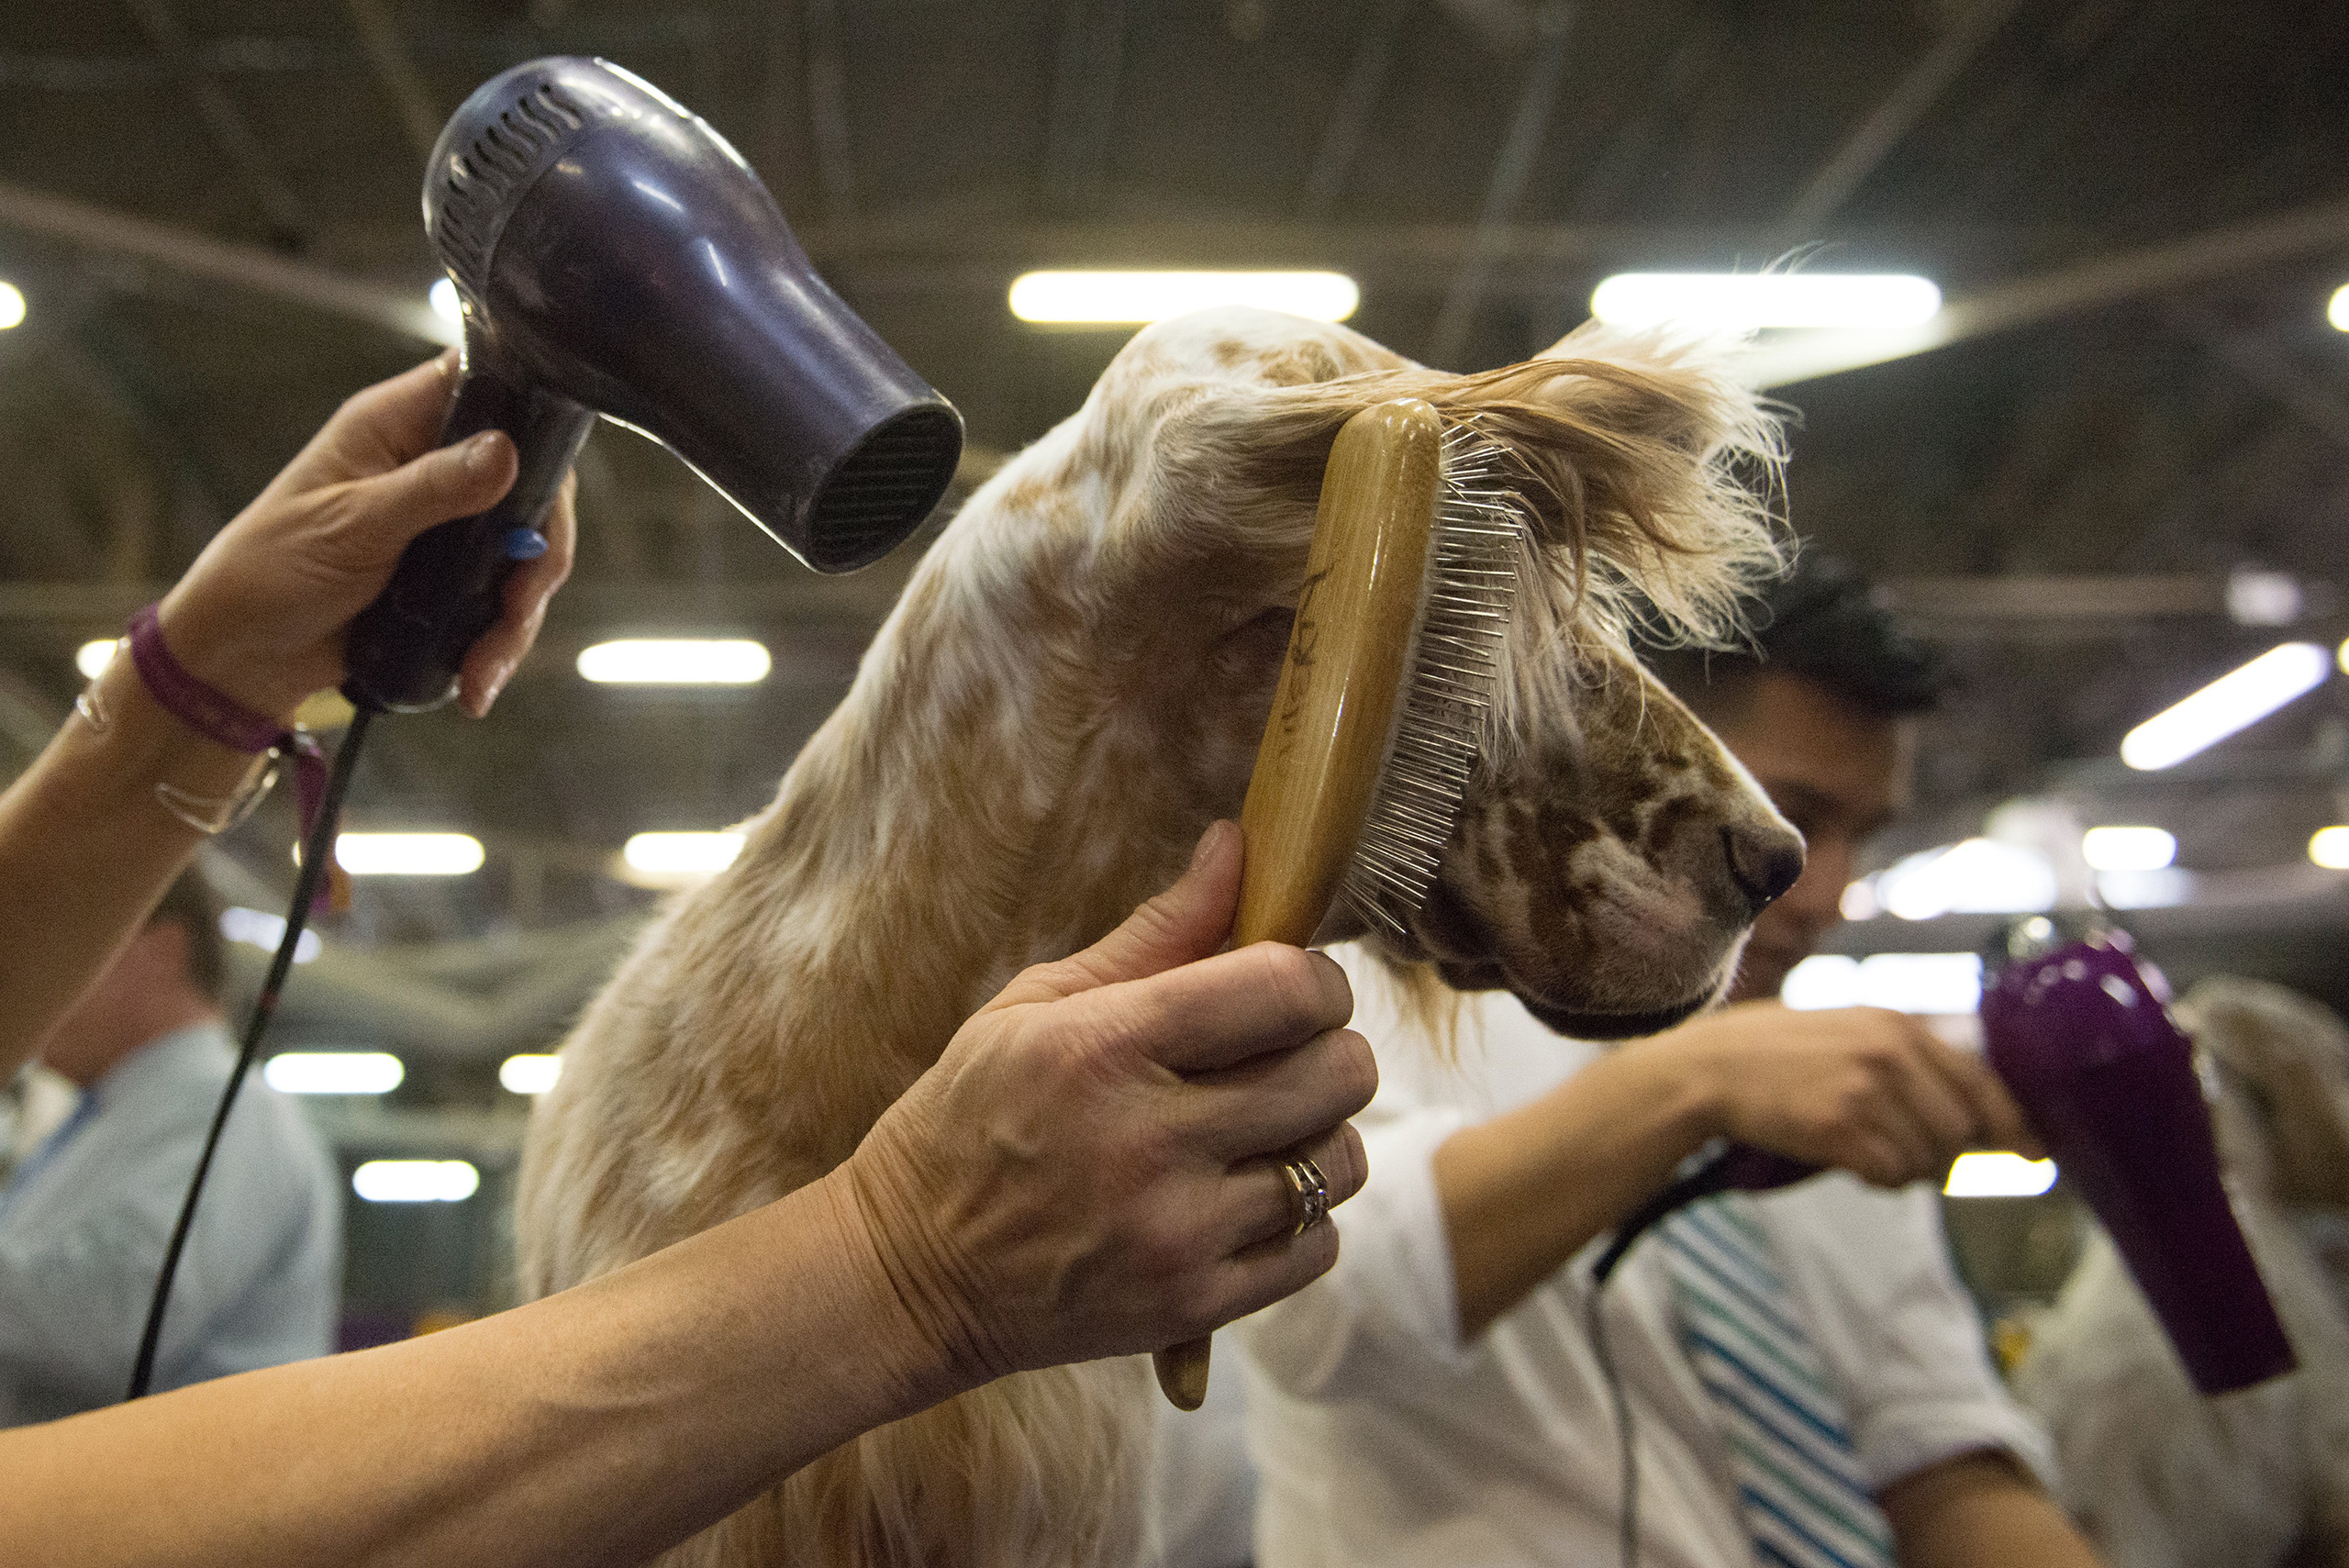 An American Cocker Spaniel gets its fur blown by a hair dryer in the grooming area on the second day of the 140th annual Westminster Kennel Club dog show in New York City on Feb. 16, 2016.